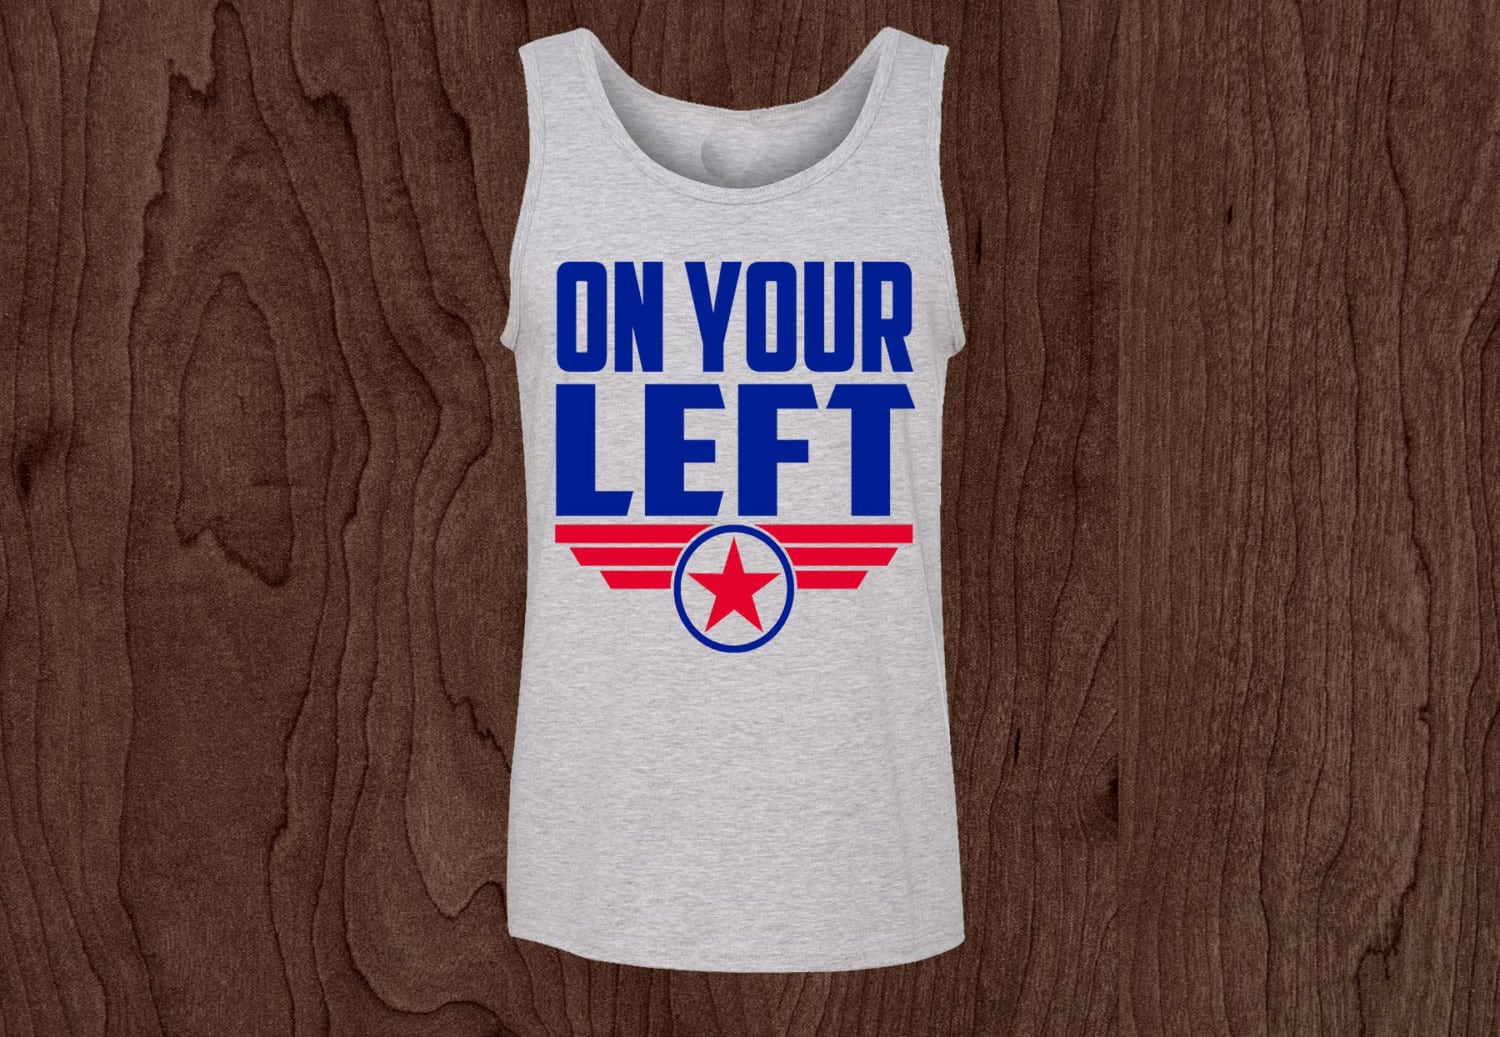 captain america captain america wedding band Captain America On Your Left fan tank top